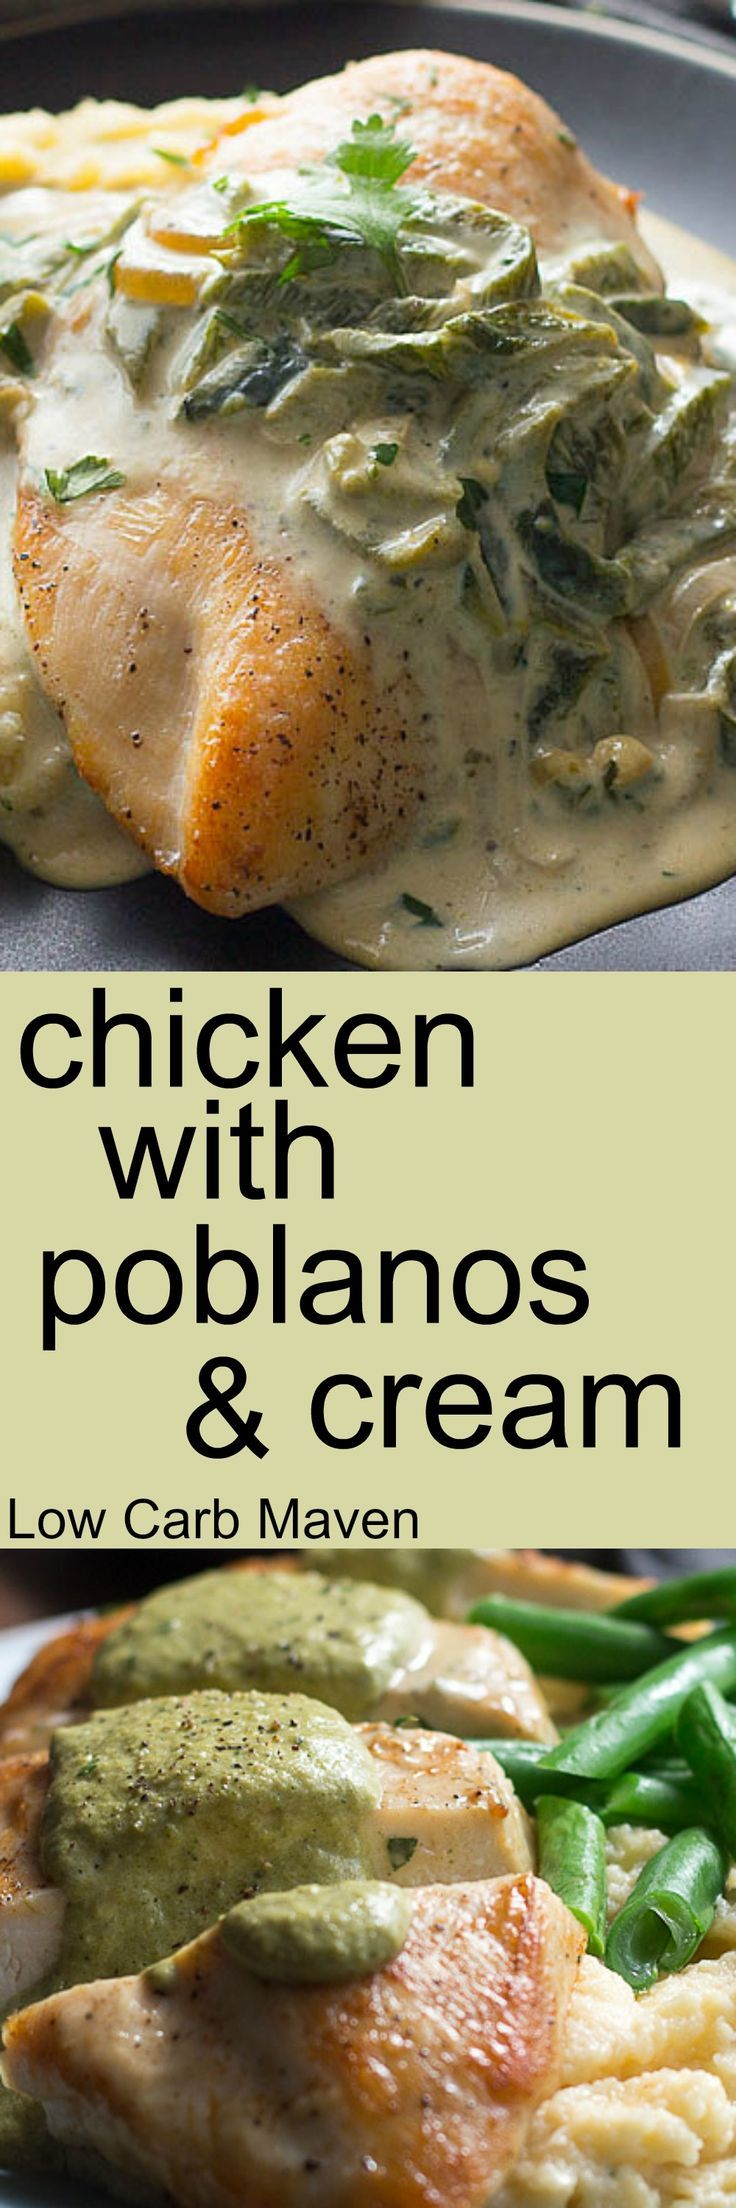 Chicken, roasted poblano peppers and cream make for a delicious low carb and keto dinner.